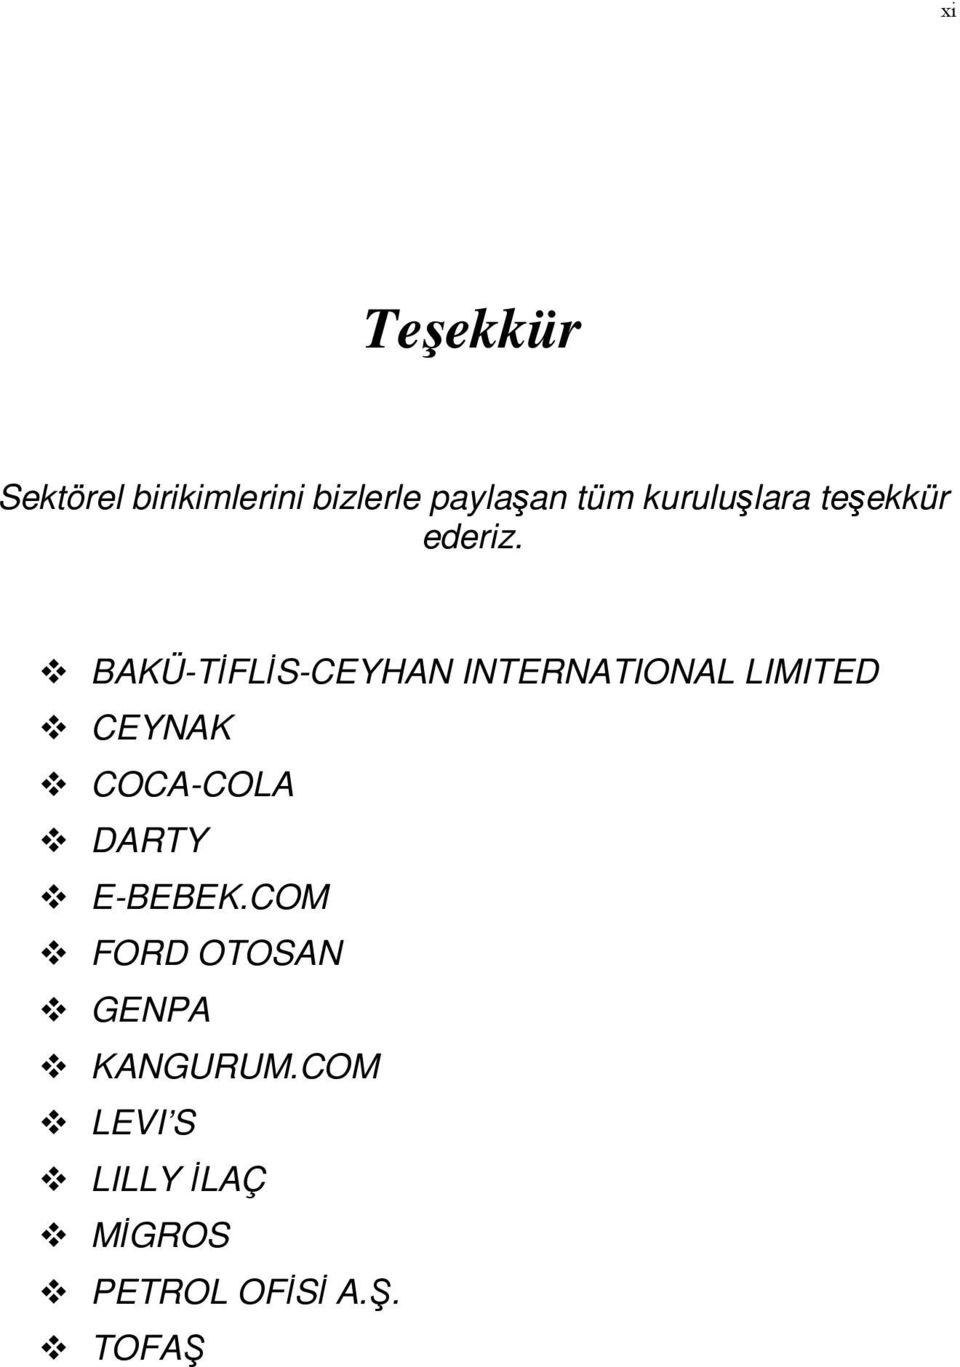 BAKÜ-TİFLİS-CEYHAN INTERNATIONAL LIMITED CEYNAK COCA-COLA